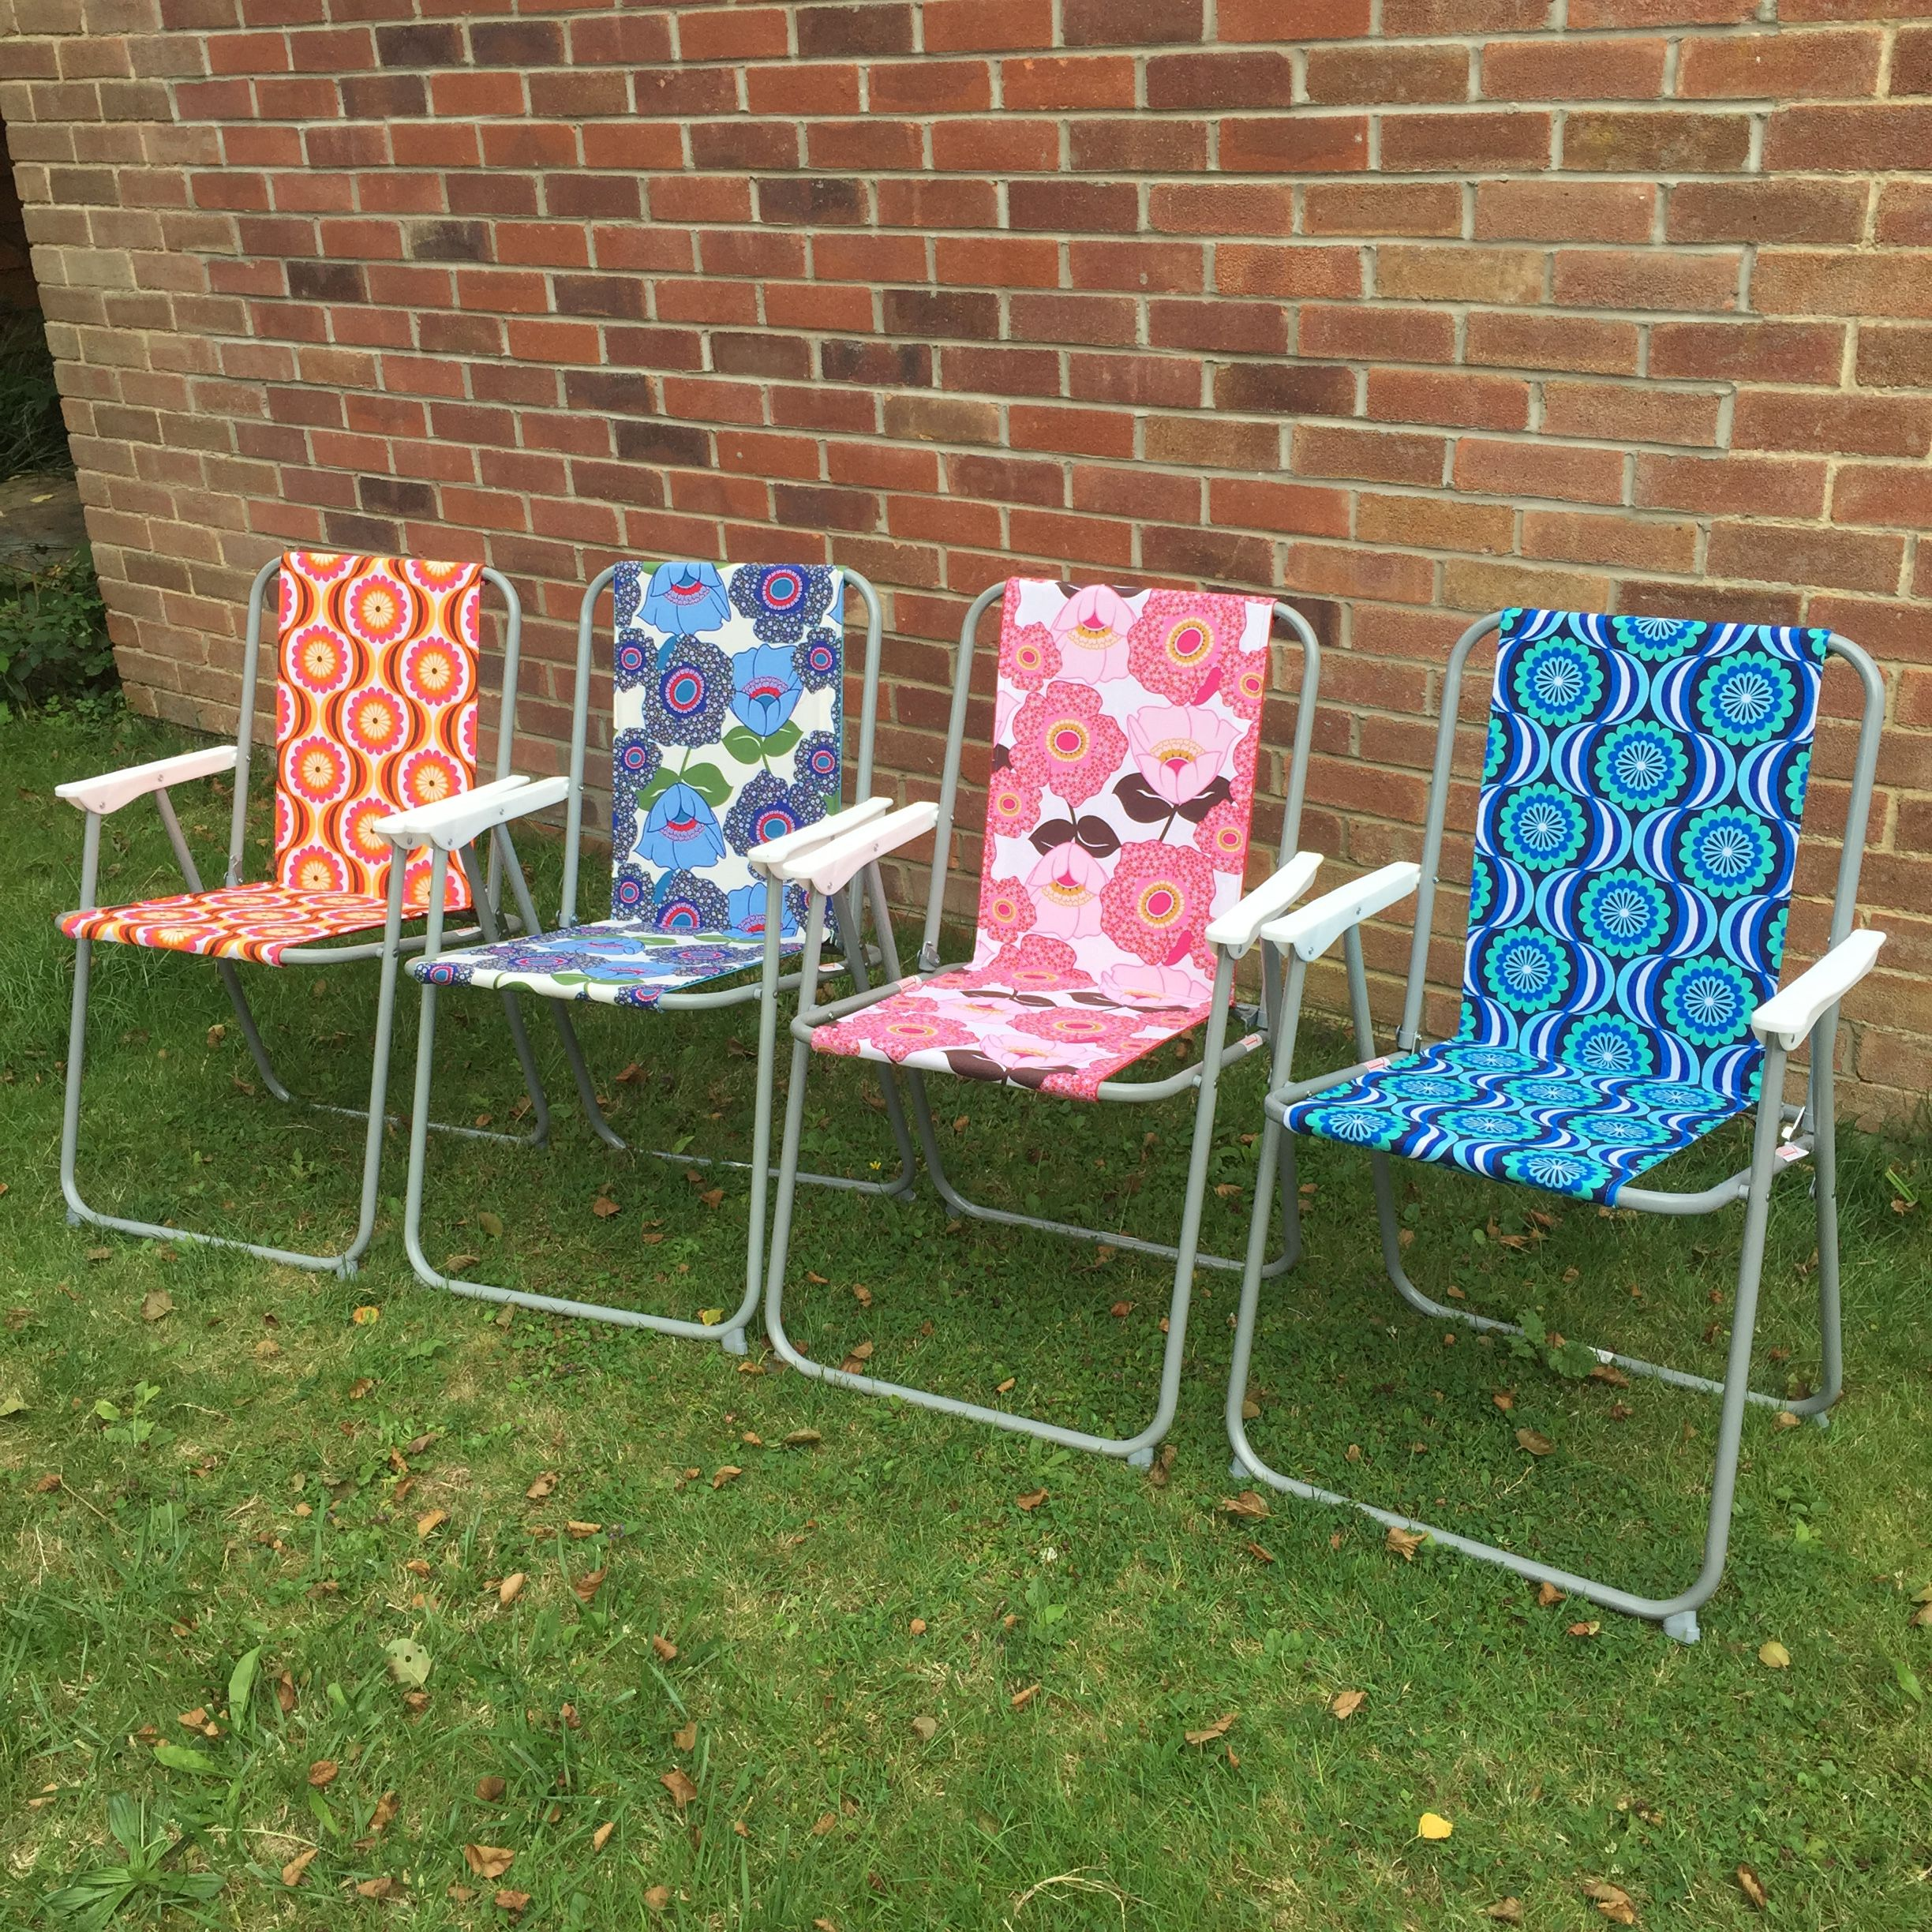 New! Made to order retro camping chairs available from recollected